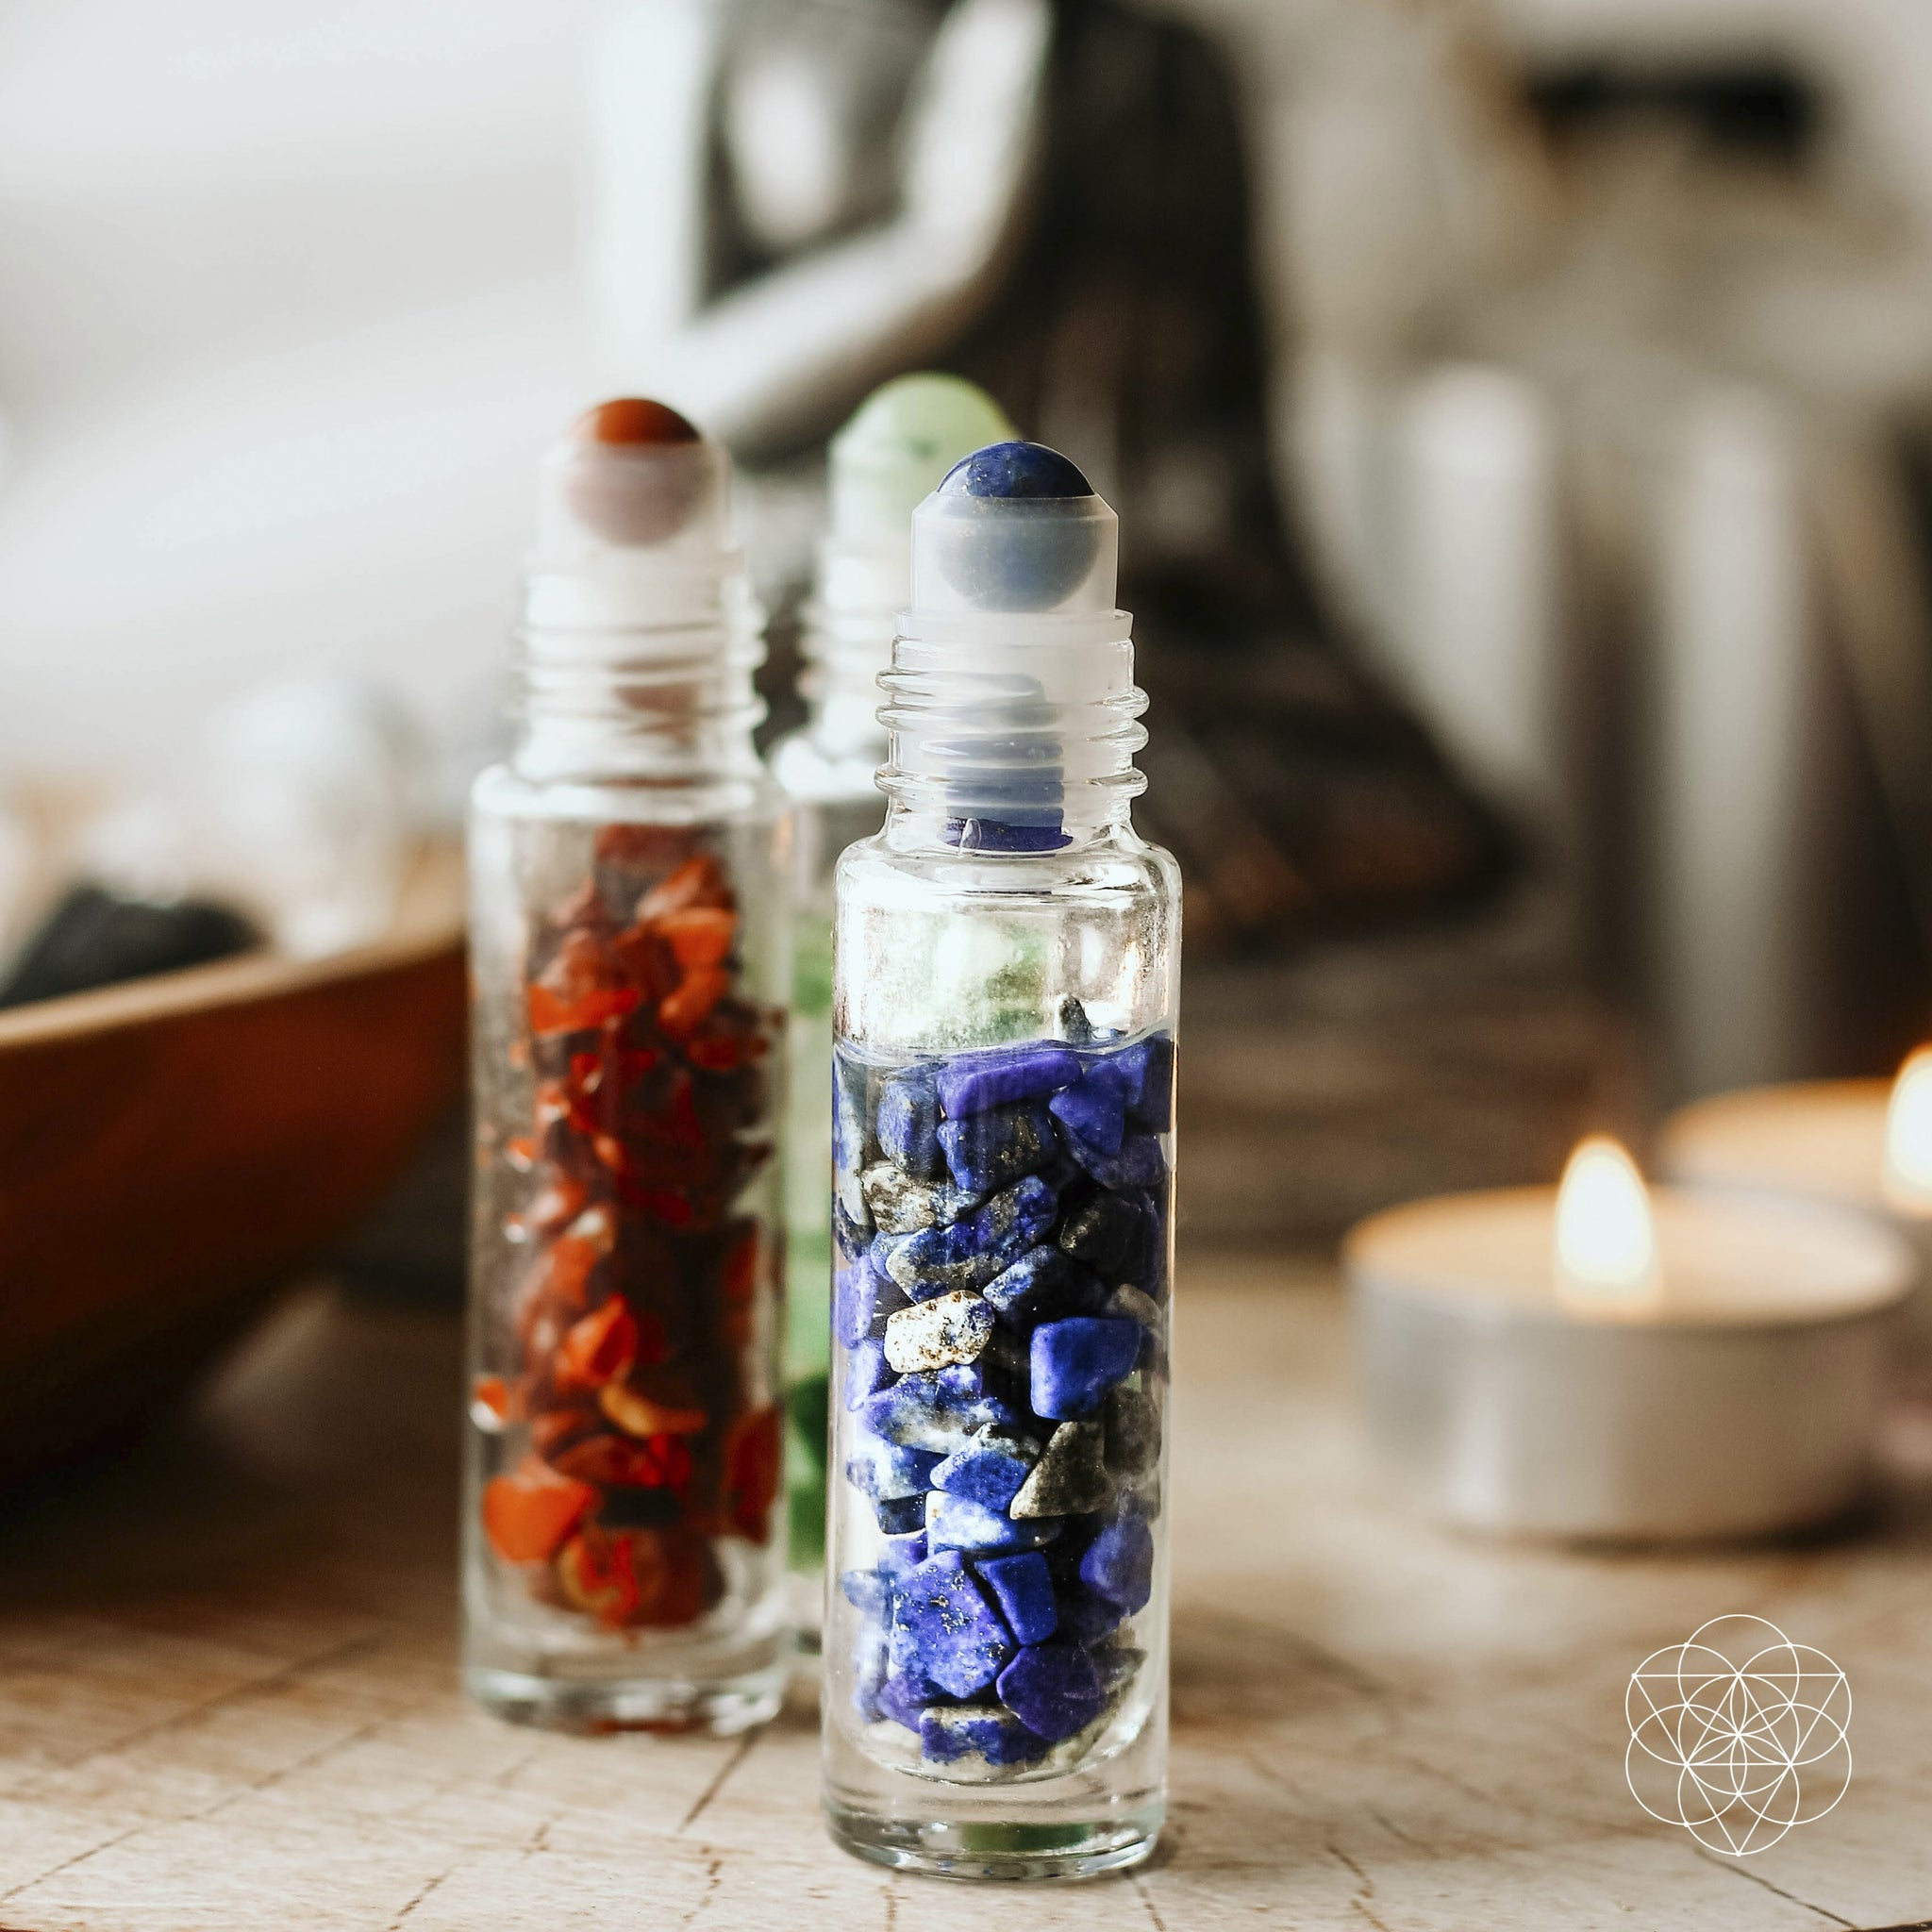 Crystal Energies - Essential Oil Roller Bottle Set